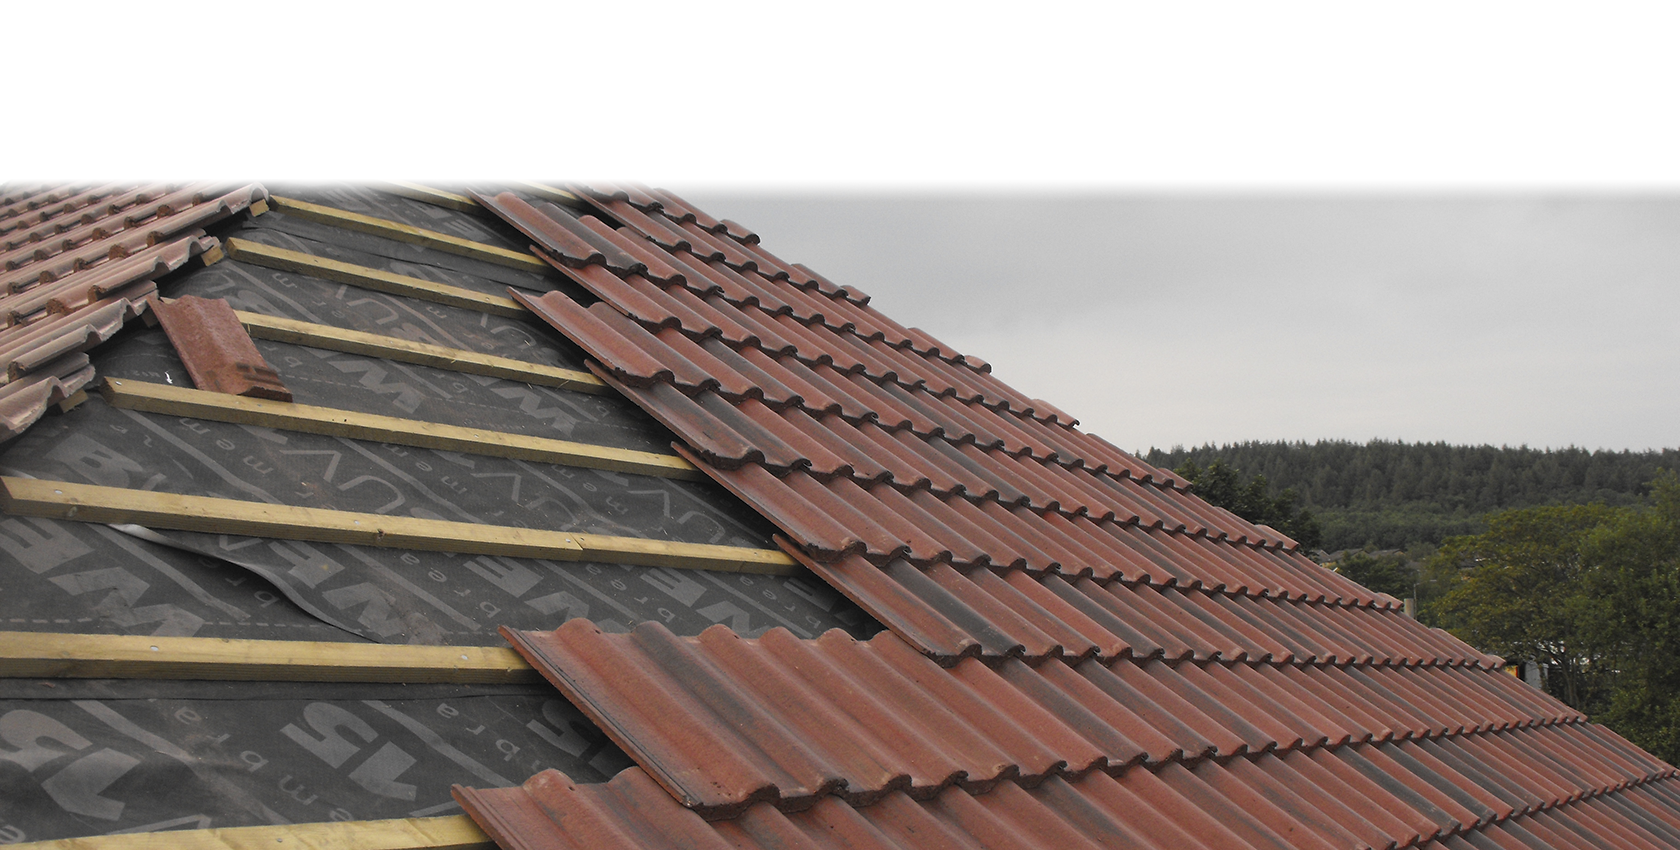 Roofing |The Redsquare Group